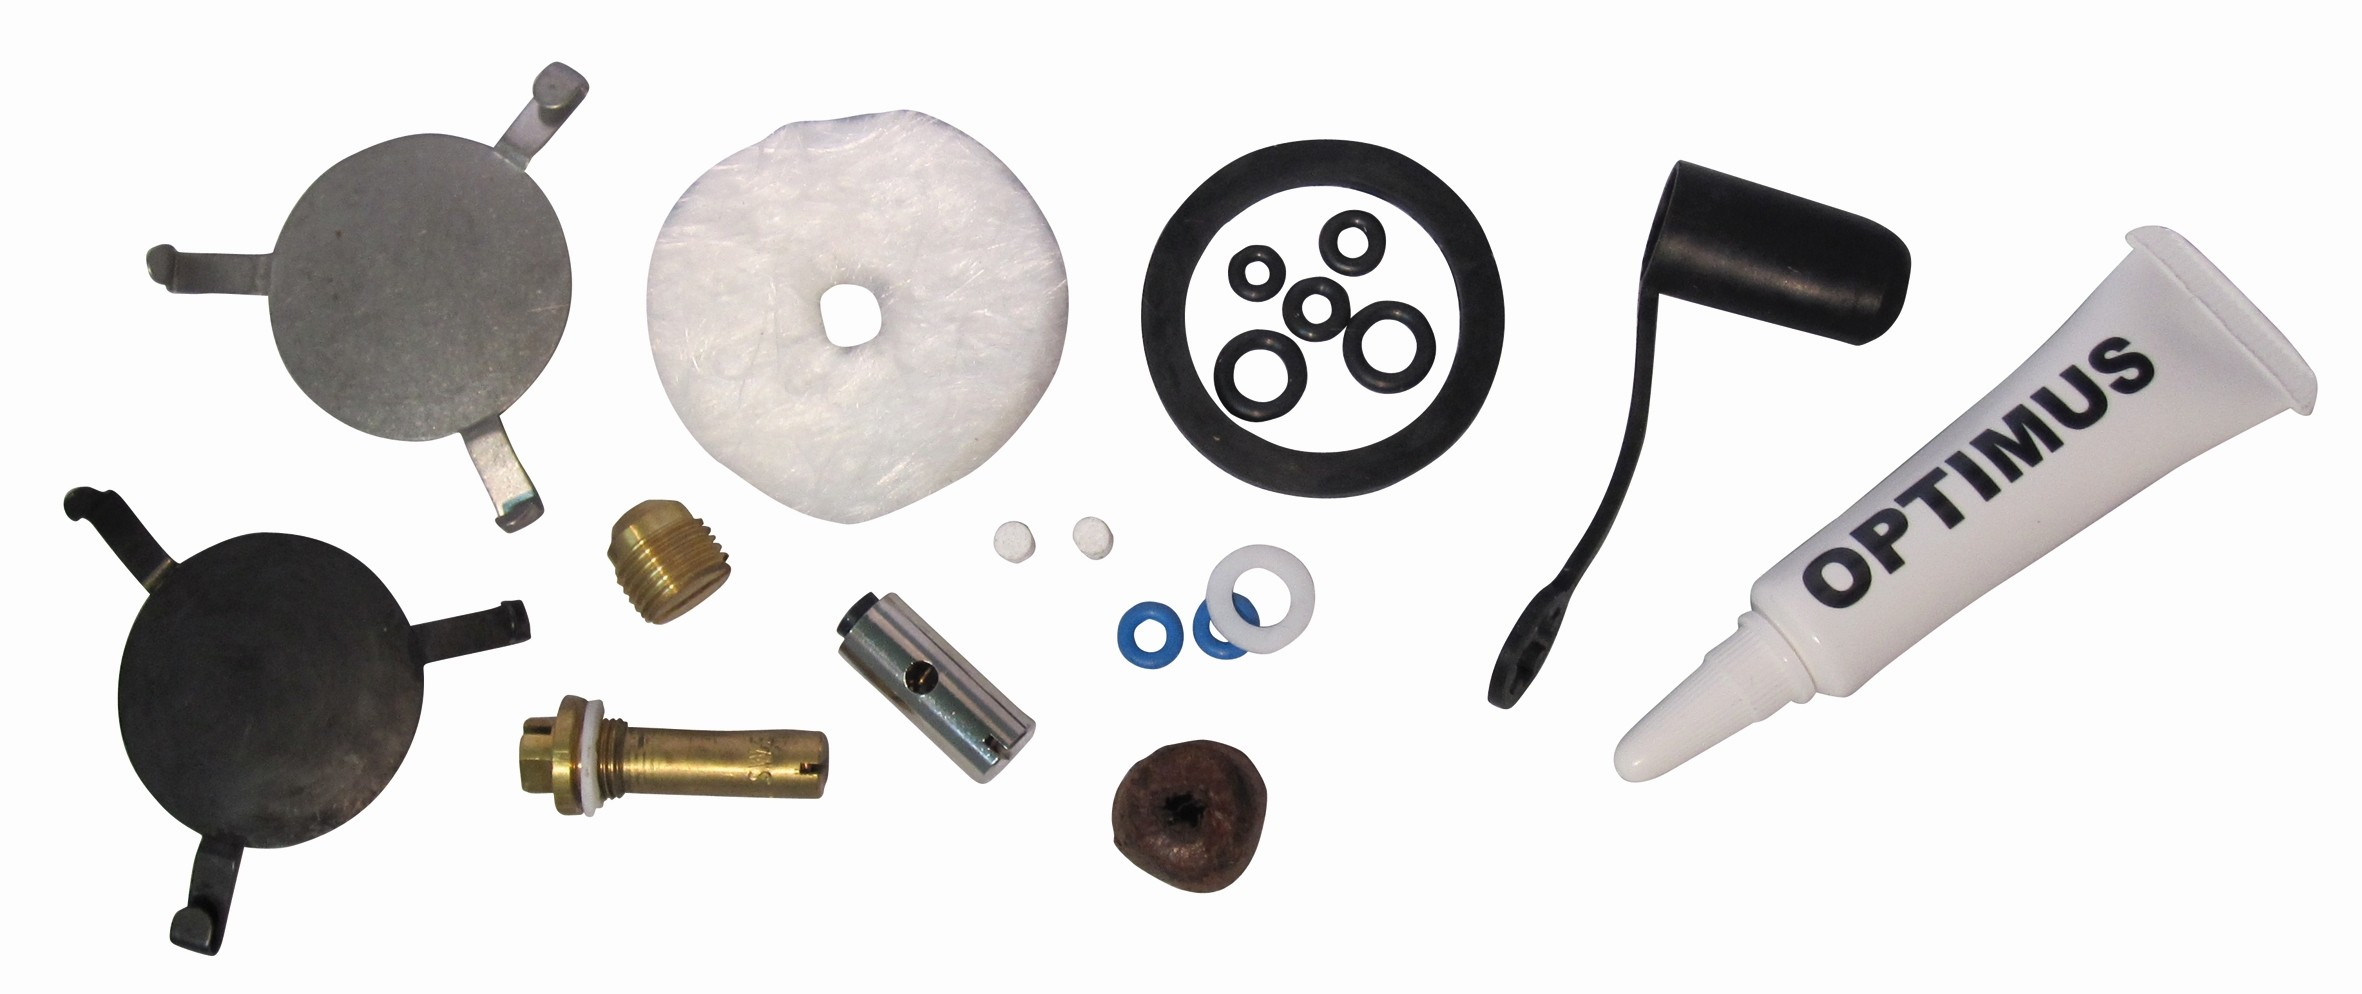 Optimus Nova, Nova+ & Polaris Spare Parts Kit